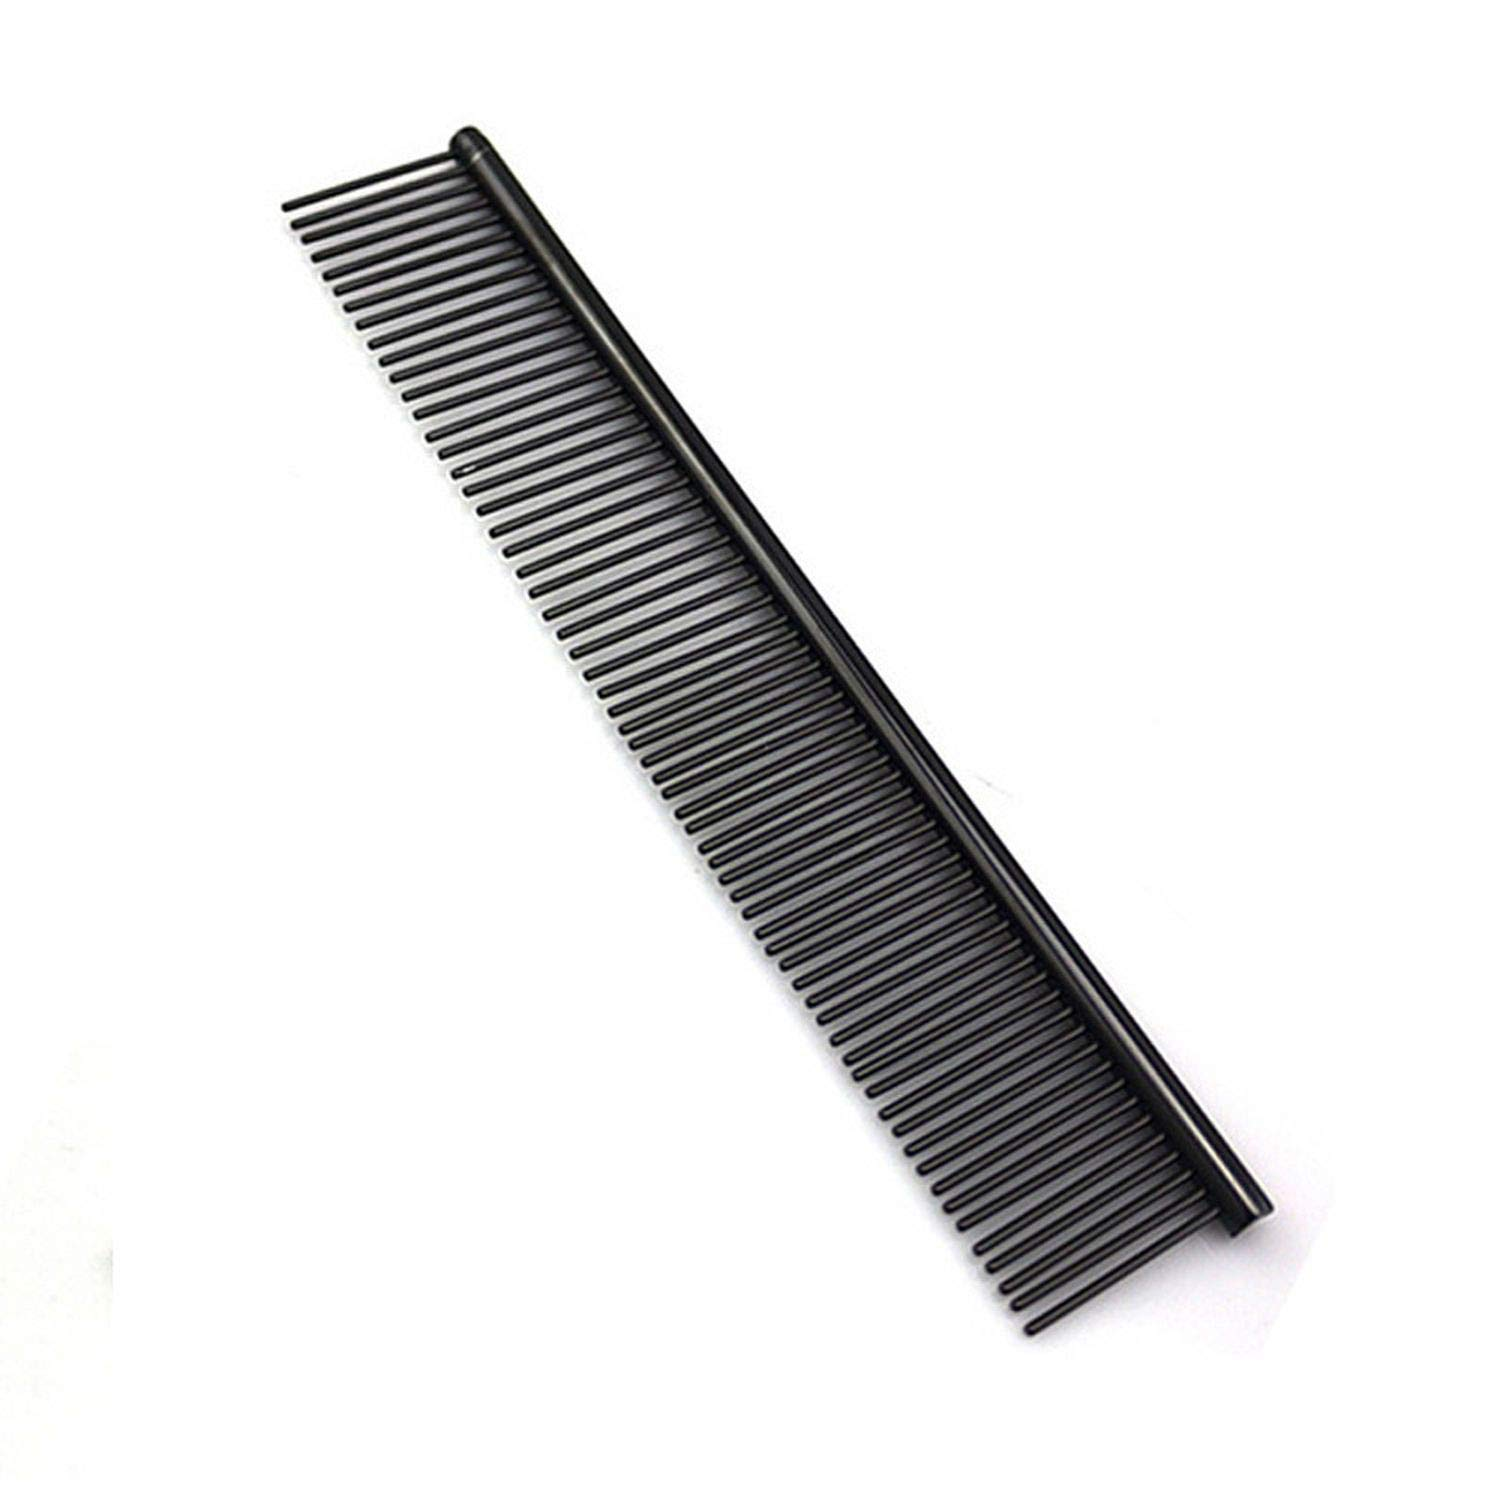 Go get it now Comb Long Hair Shedding Grooming Flea Comb Pet Puppy Dog Cat Stainless Steel Comb,10,As Show